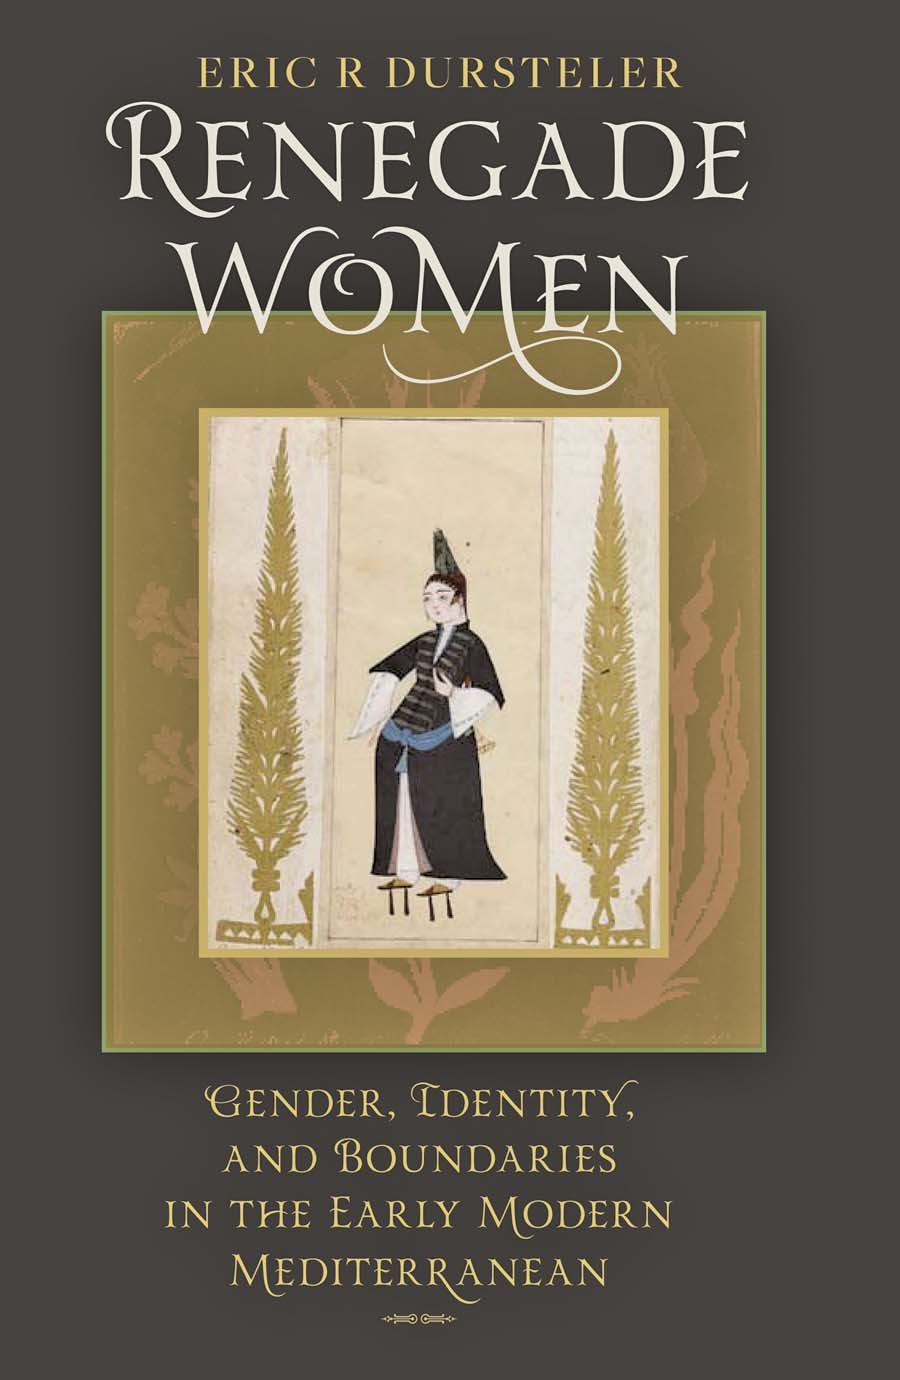 Renegade Women – Gender, Identity, and Boundaries in the Early Modern Mediterranean